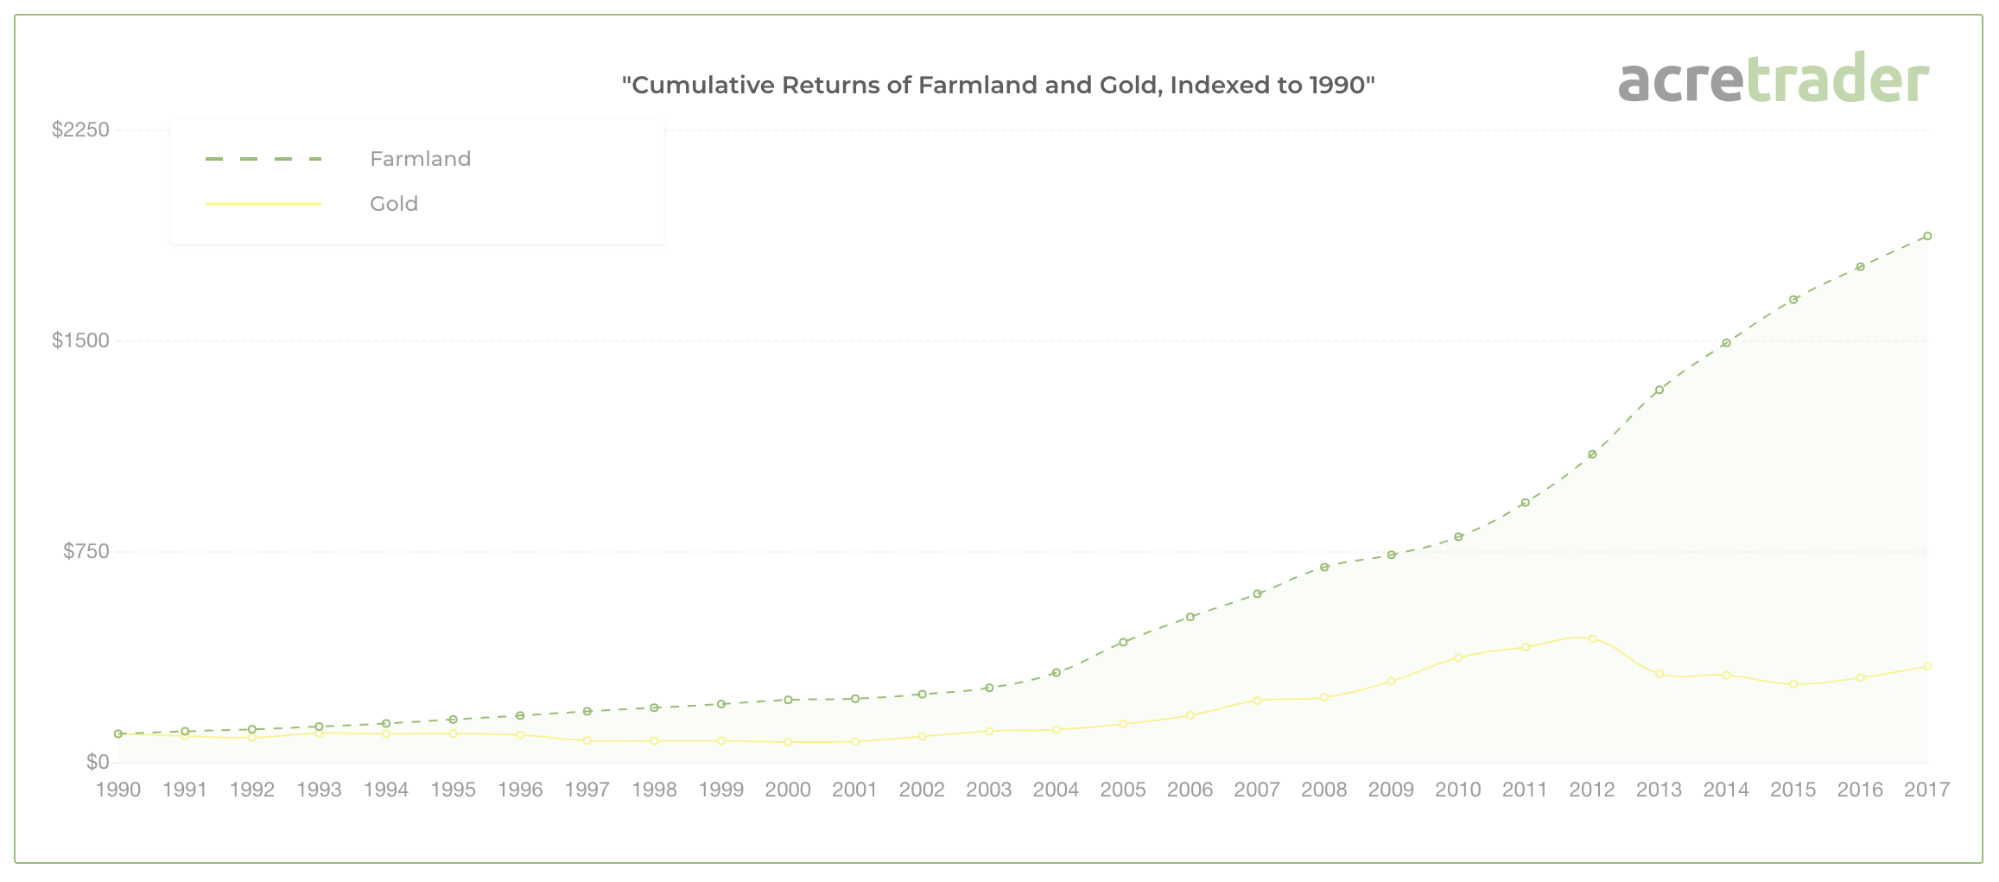 cumulative-returns-of-farmland-versus-gold-indexed-to-1990.png